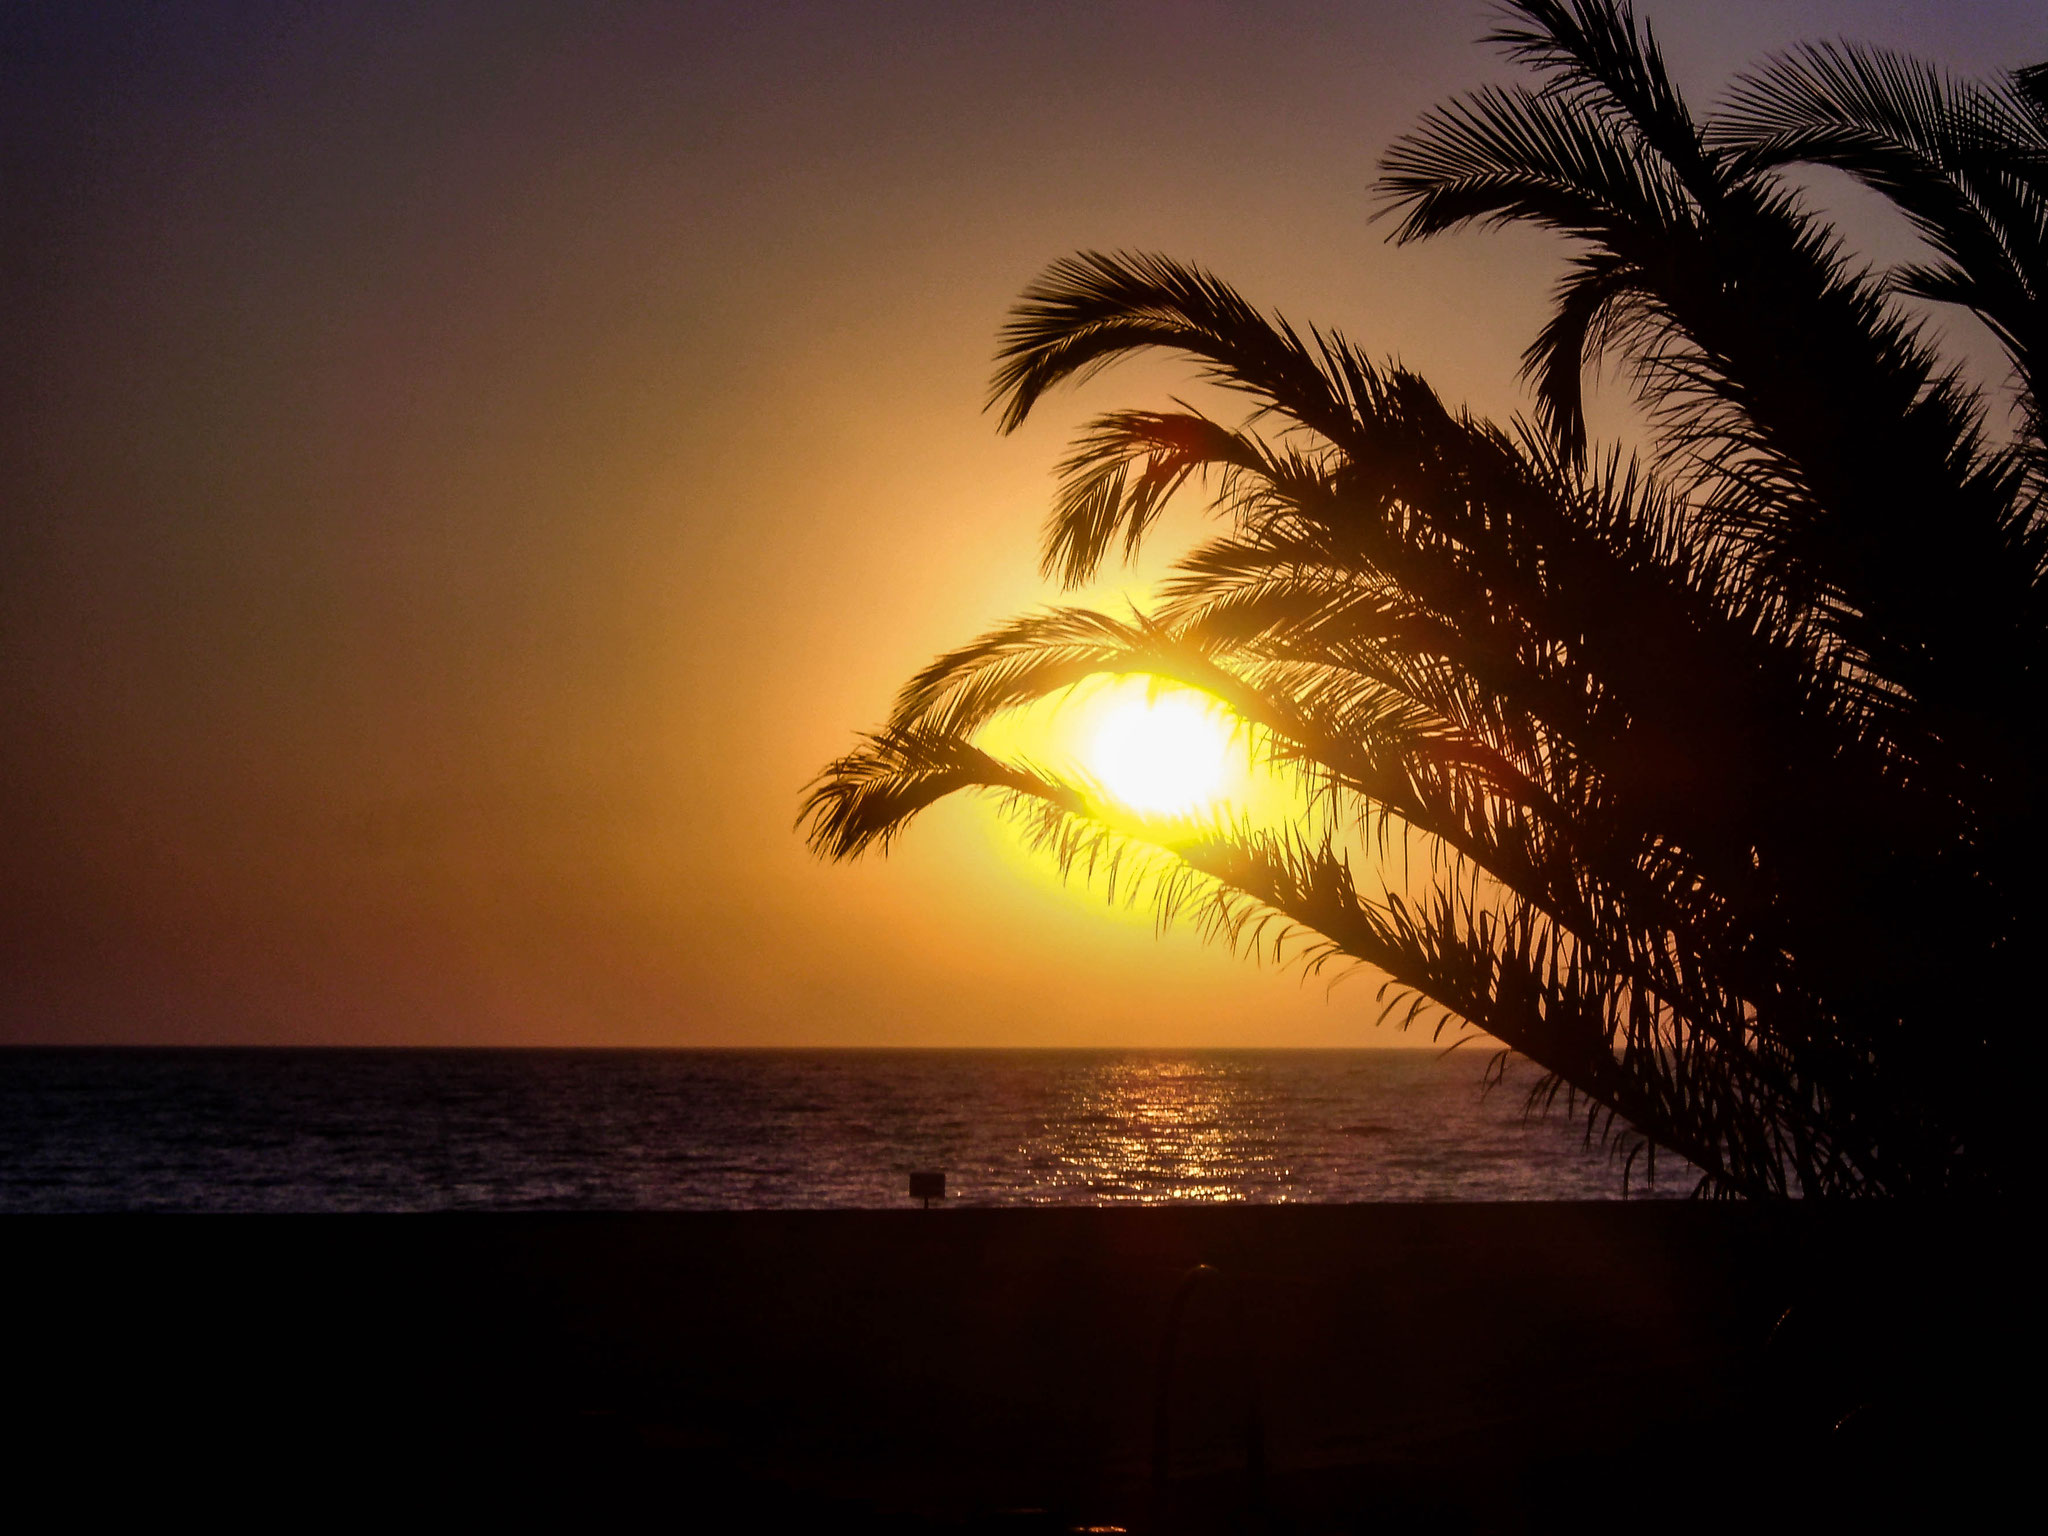 Sunset over the Italian sea with beach and palmtree